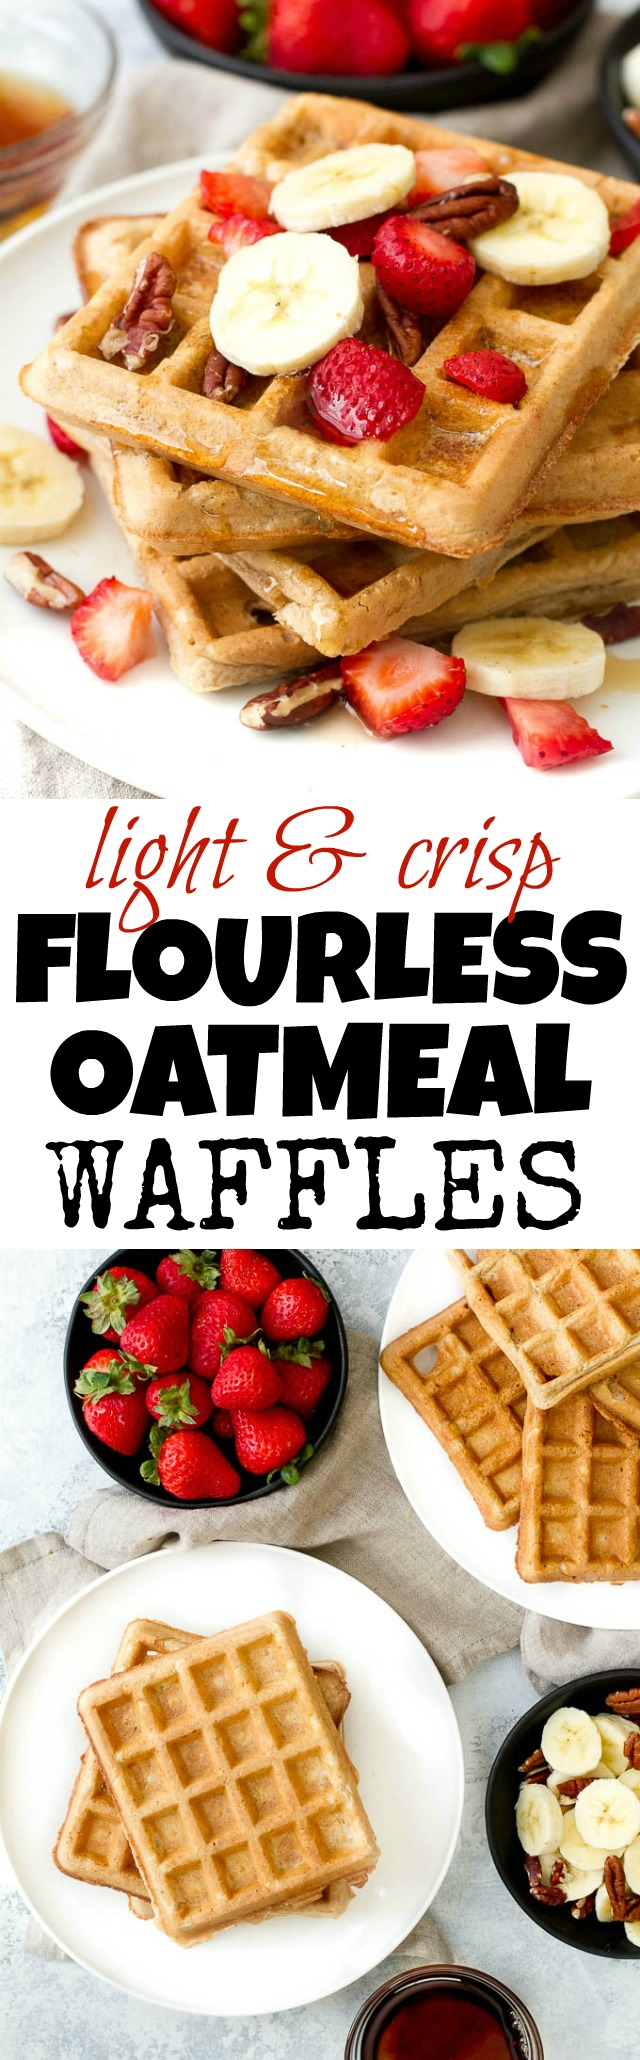 Flourless oatmeal waffles that are crispy on the outside, fluffy on the inside, and crazy easy to make! | runningwithspoons.com